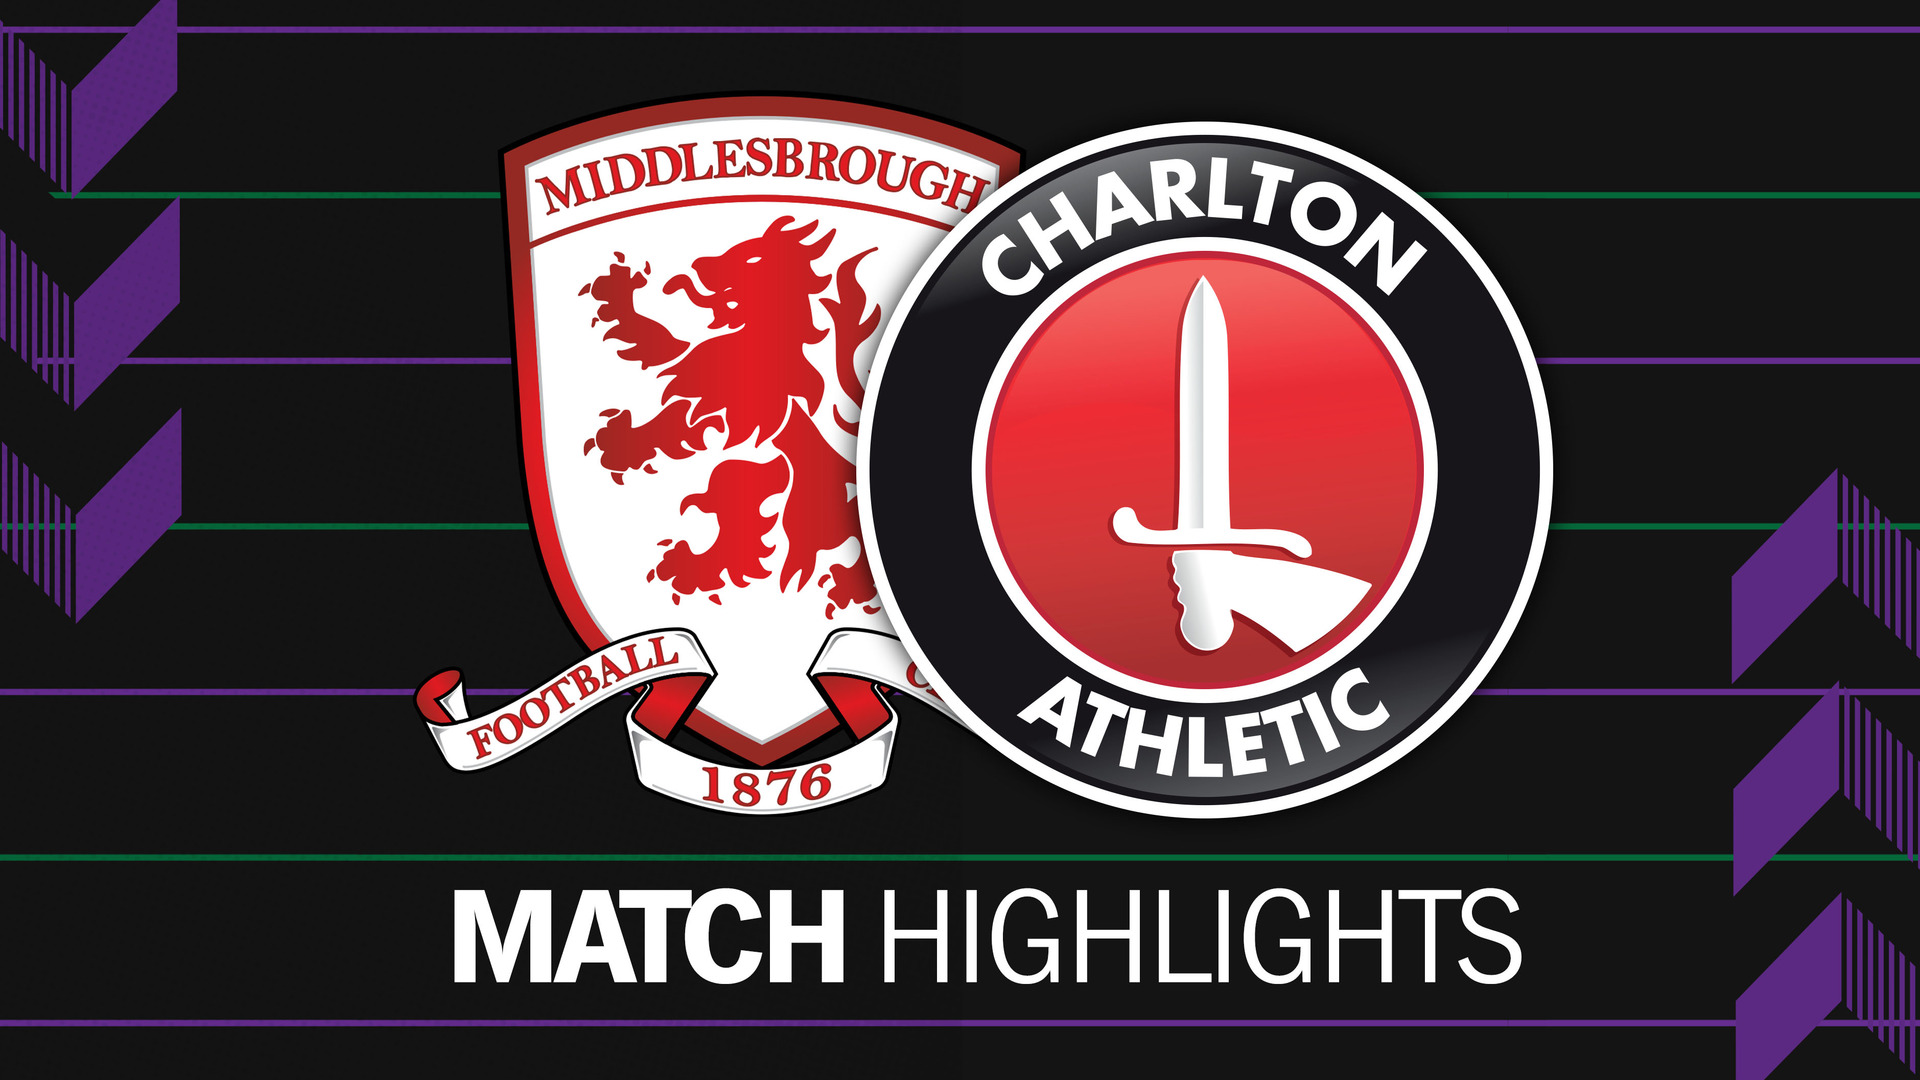 20 HIGHLIGHTS | Middlesbrough 1 Charlton 0 (December 2019)